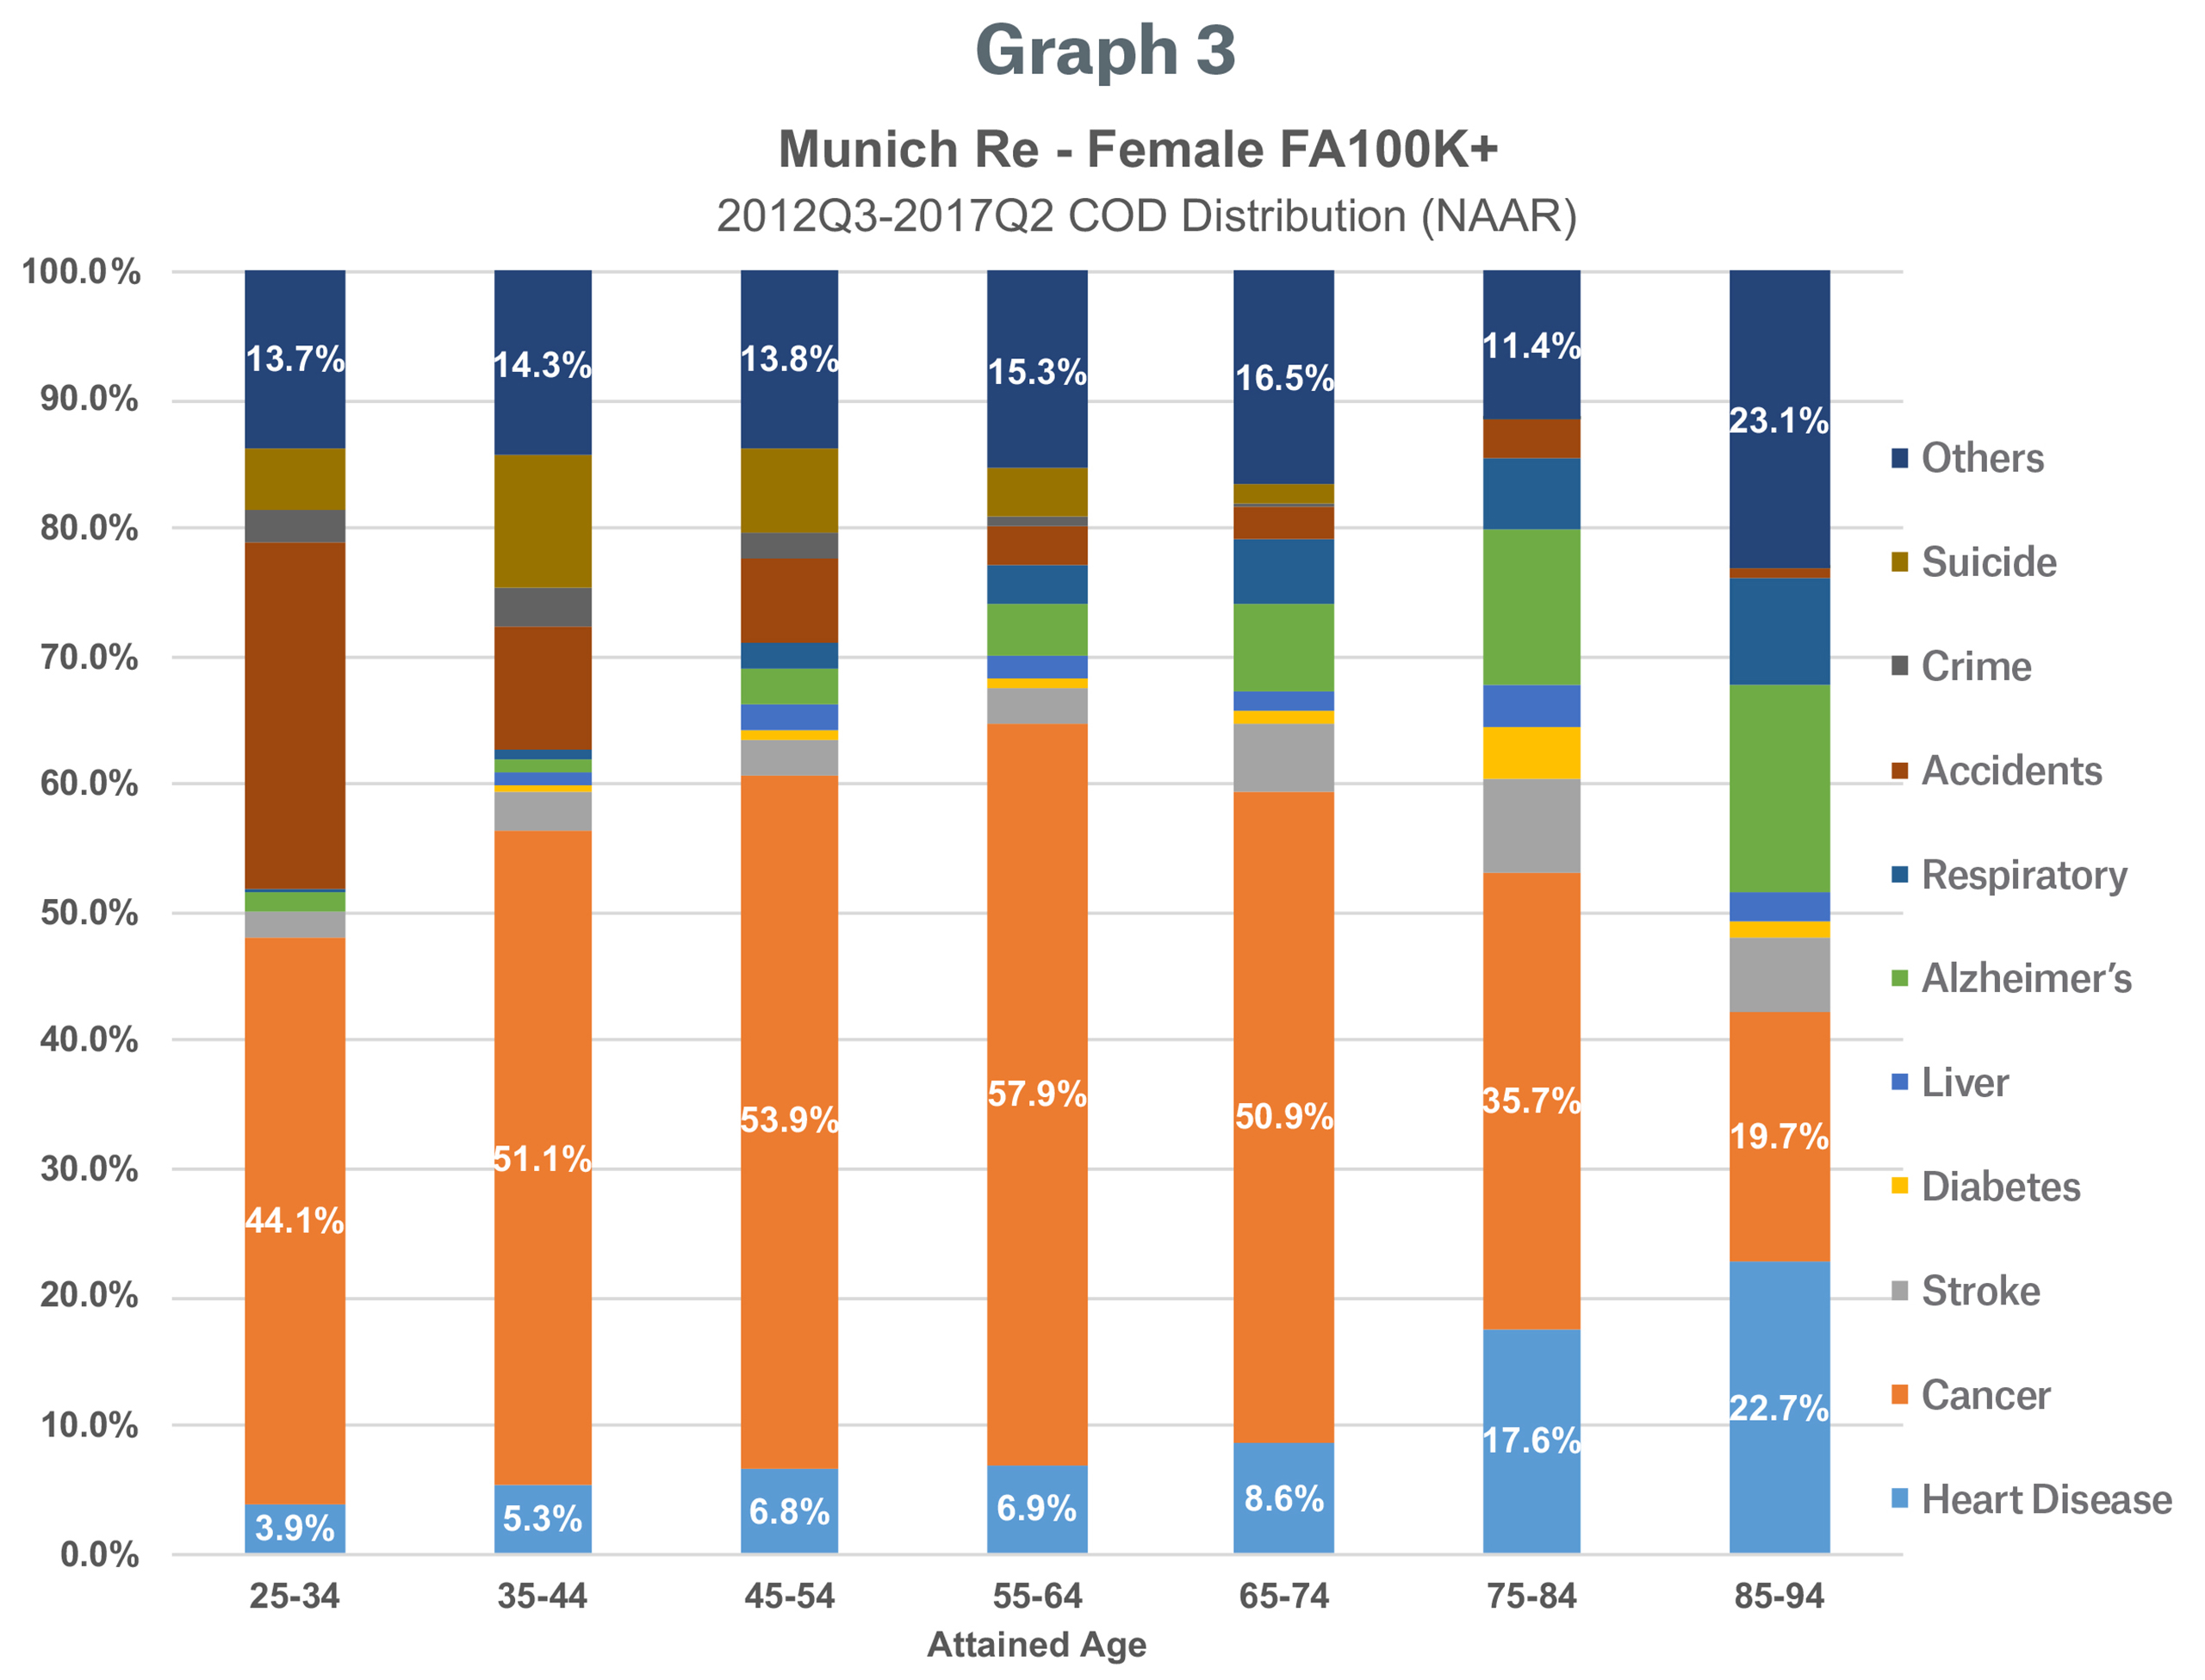 Graph 3 Image - Munich Re - Female FA 100K+